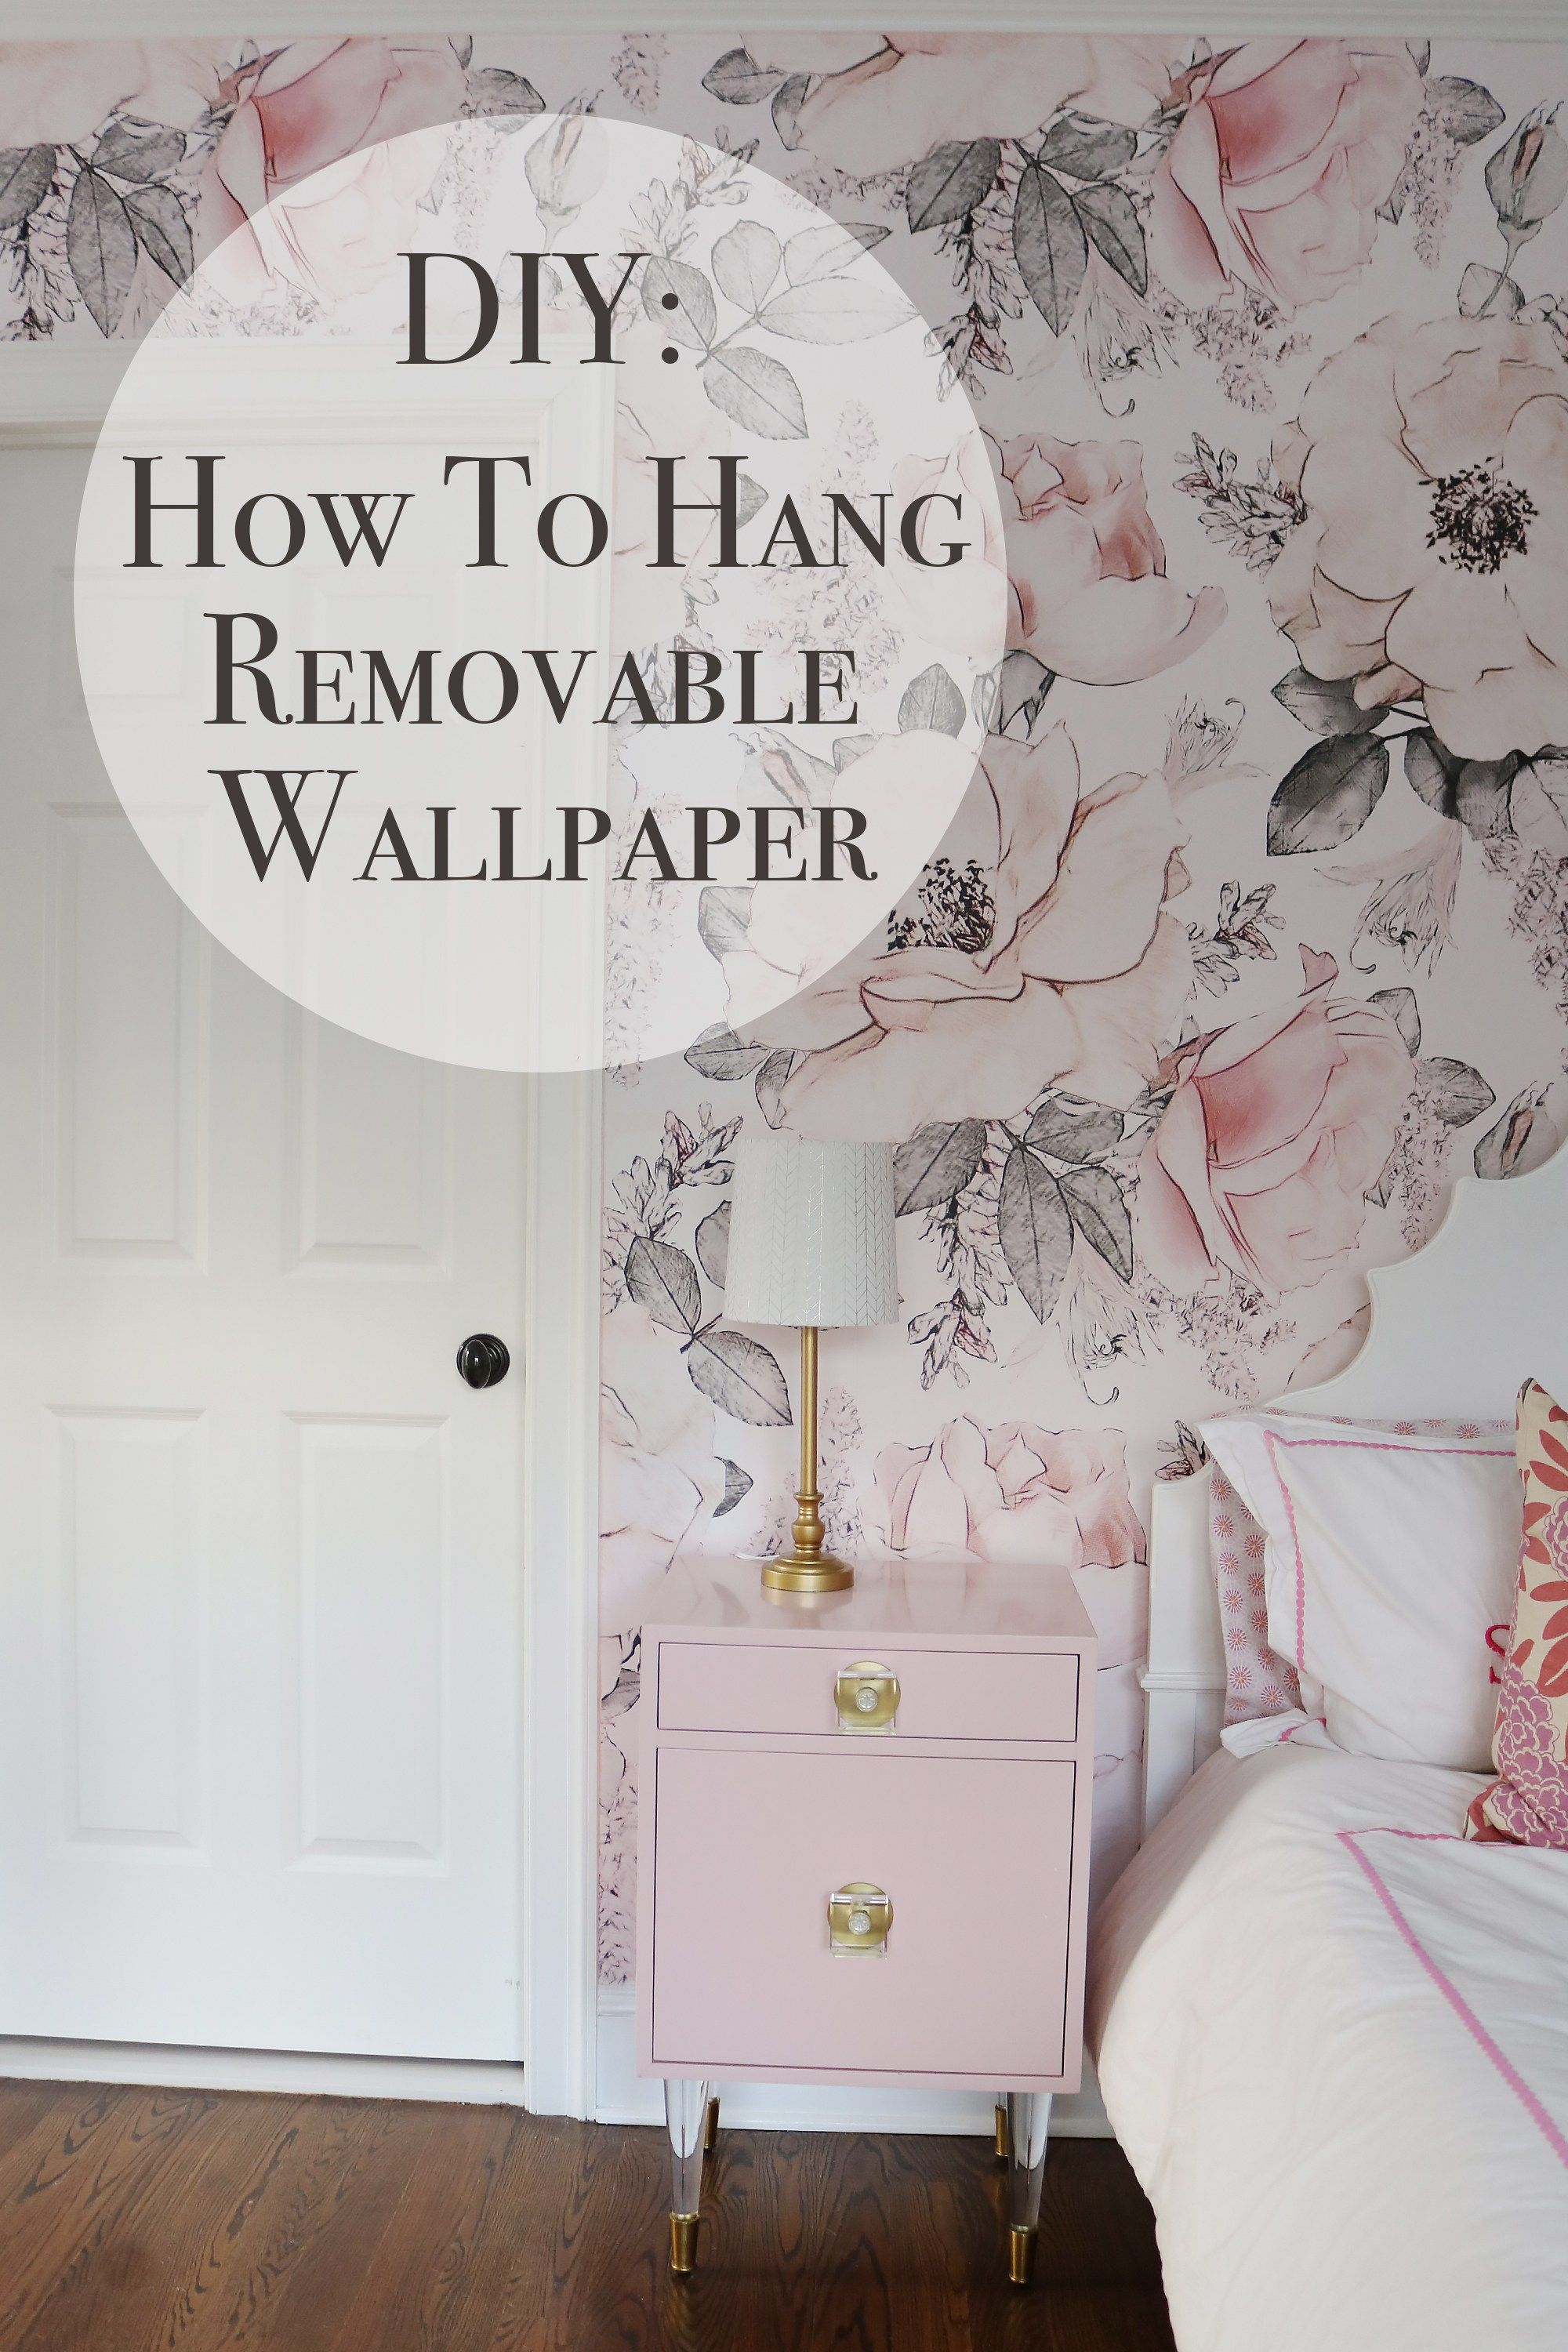 How To Hang Removable Wallpaper Darling Darleen A Lifestyle Design Blog Removable Wallpaper Diy Temporary Wallpaper Bedroom Renters Decorating